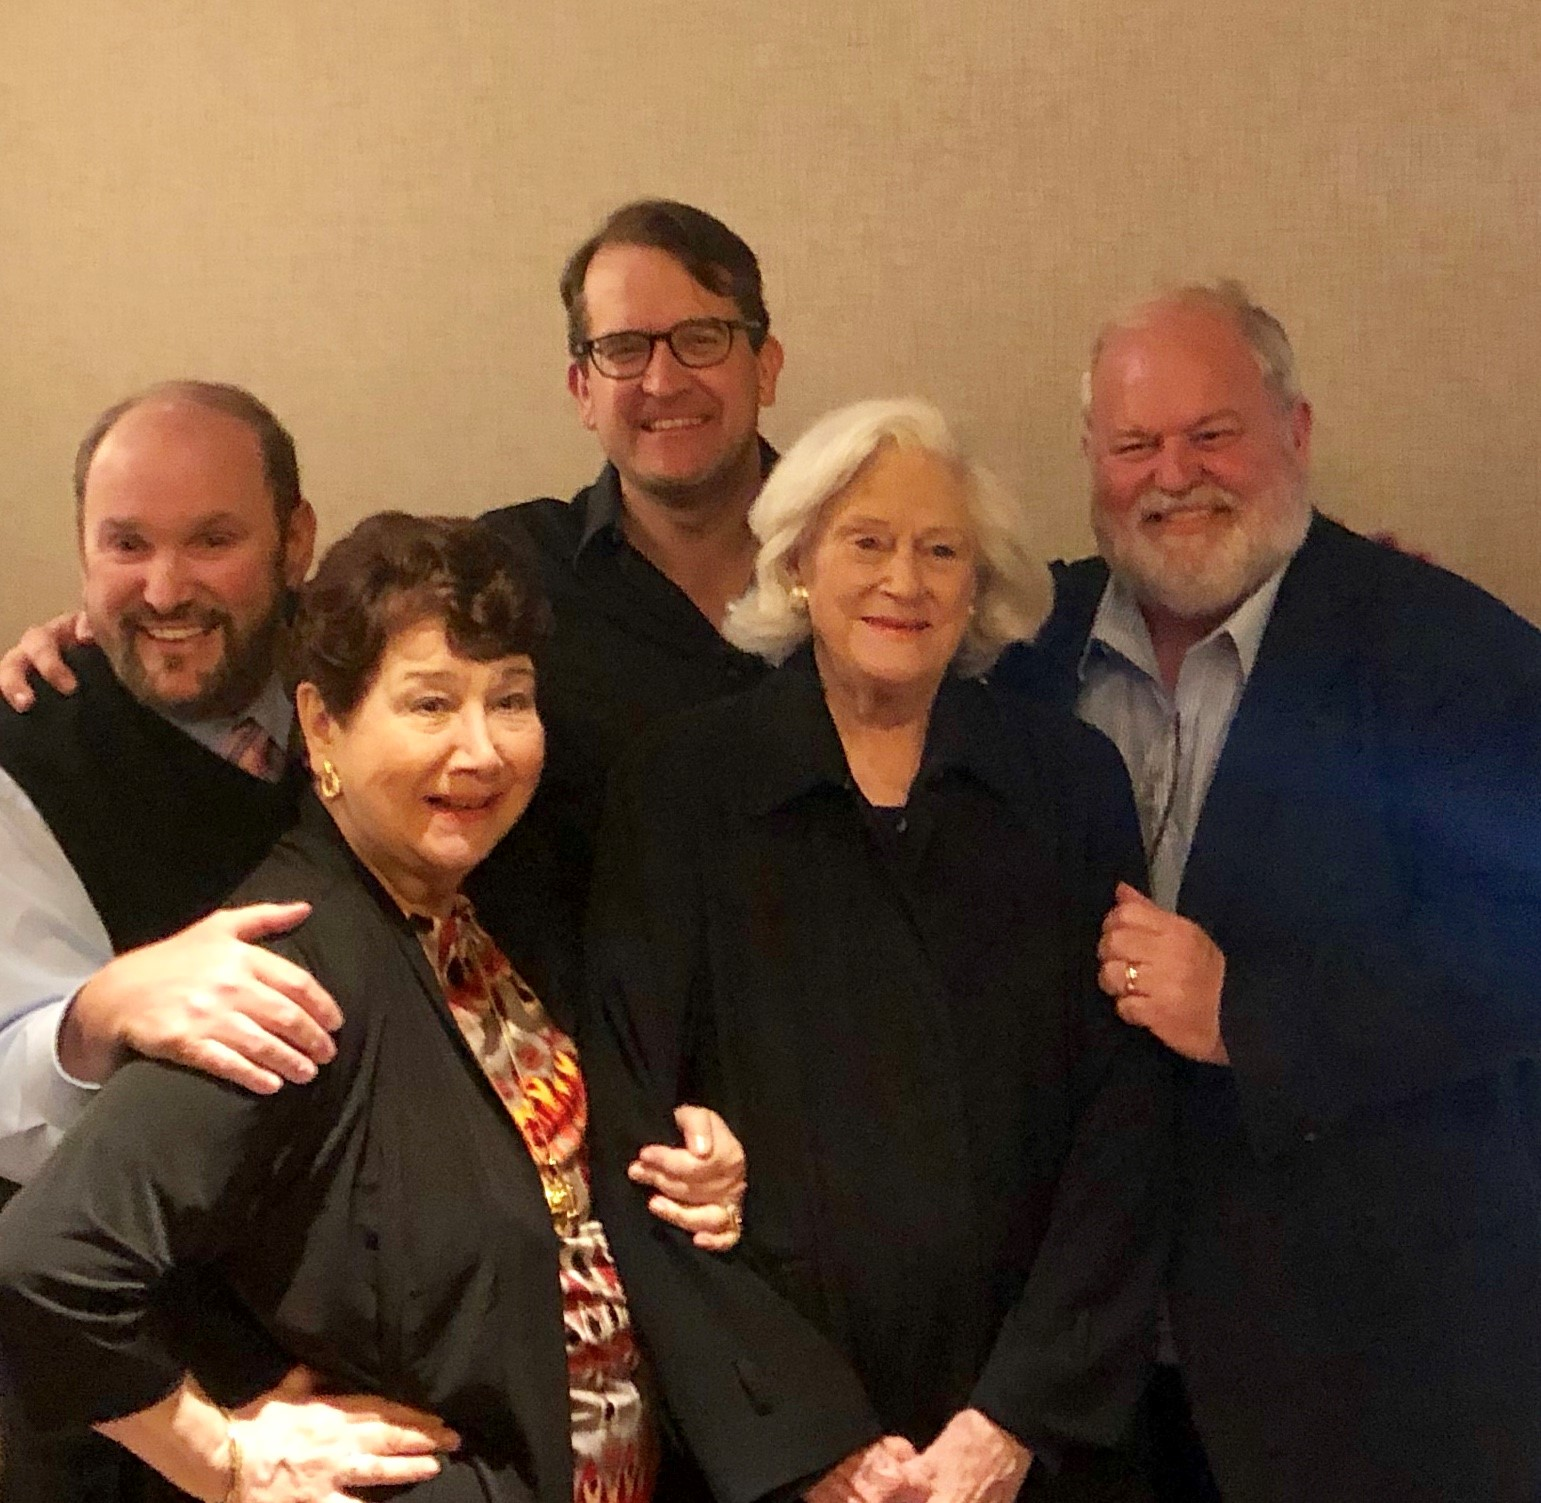 Dominic Massini, Artistic Director; Mary Lou Bilder Gold, past President; James Moye,  Tootsie  cast member; Donna Atwater, co-Founder; and Martin Balogh, President.